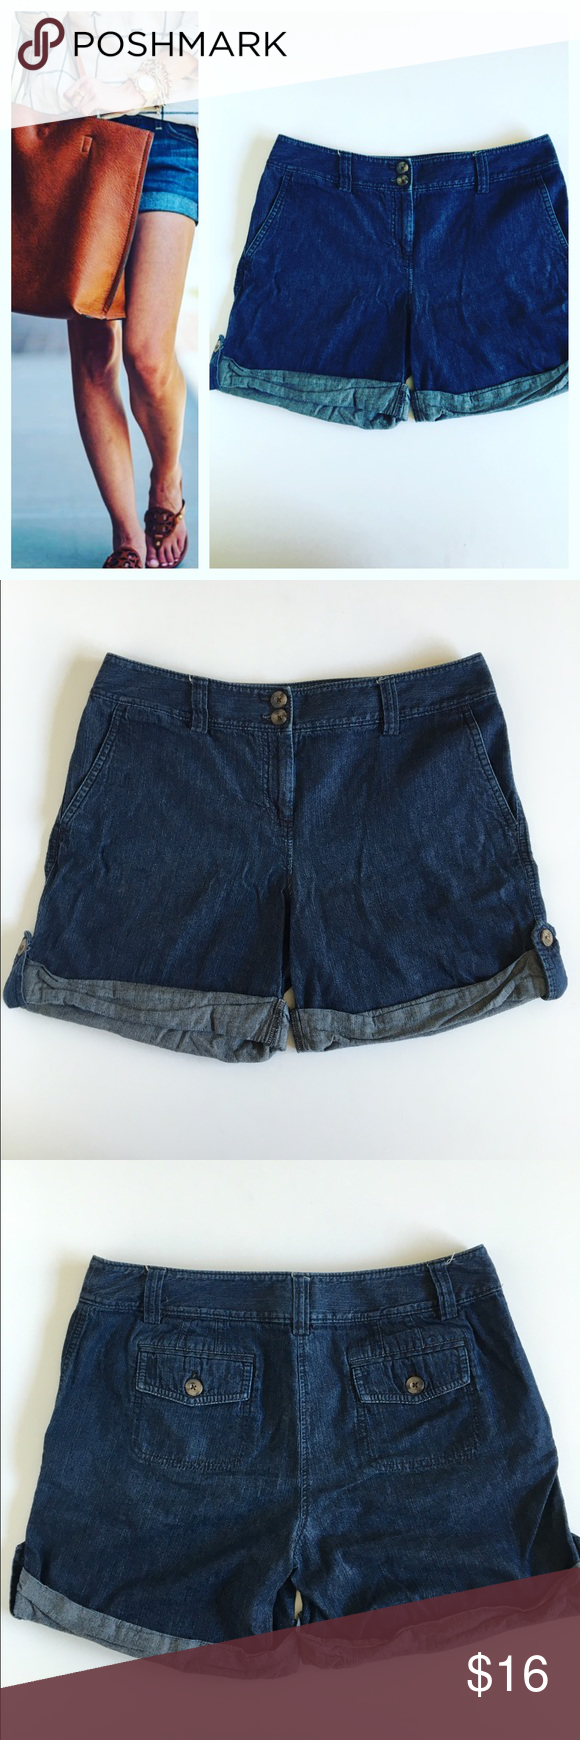 "Ann Taylor Factory Cuffed Denim Shorts. Ann Taylor Factory Cuffed Denim Shorts.  Cute, classic piece. Flat front with zip/button closure and two front pockets. Belt loops. Two buttoned flap rear pockets. Buttoned roll tabs at cuffs. Cotton.  Size 6  Waist - 16.5"" Rise - 10"" Inseam -  6.25"" Ann Taylor Shorts Jean Shorts"